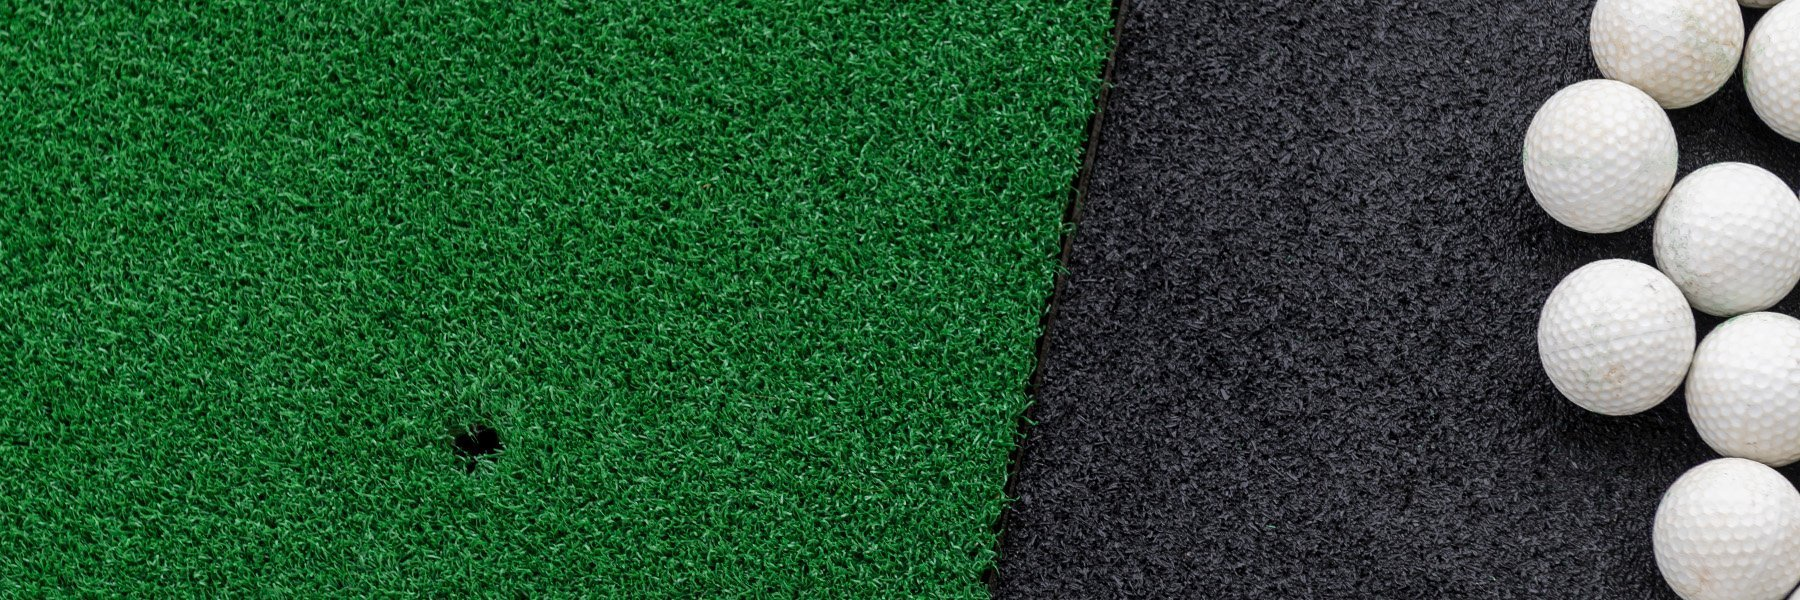 Non-Infilled Indoor Sports Turf for Golf Shops